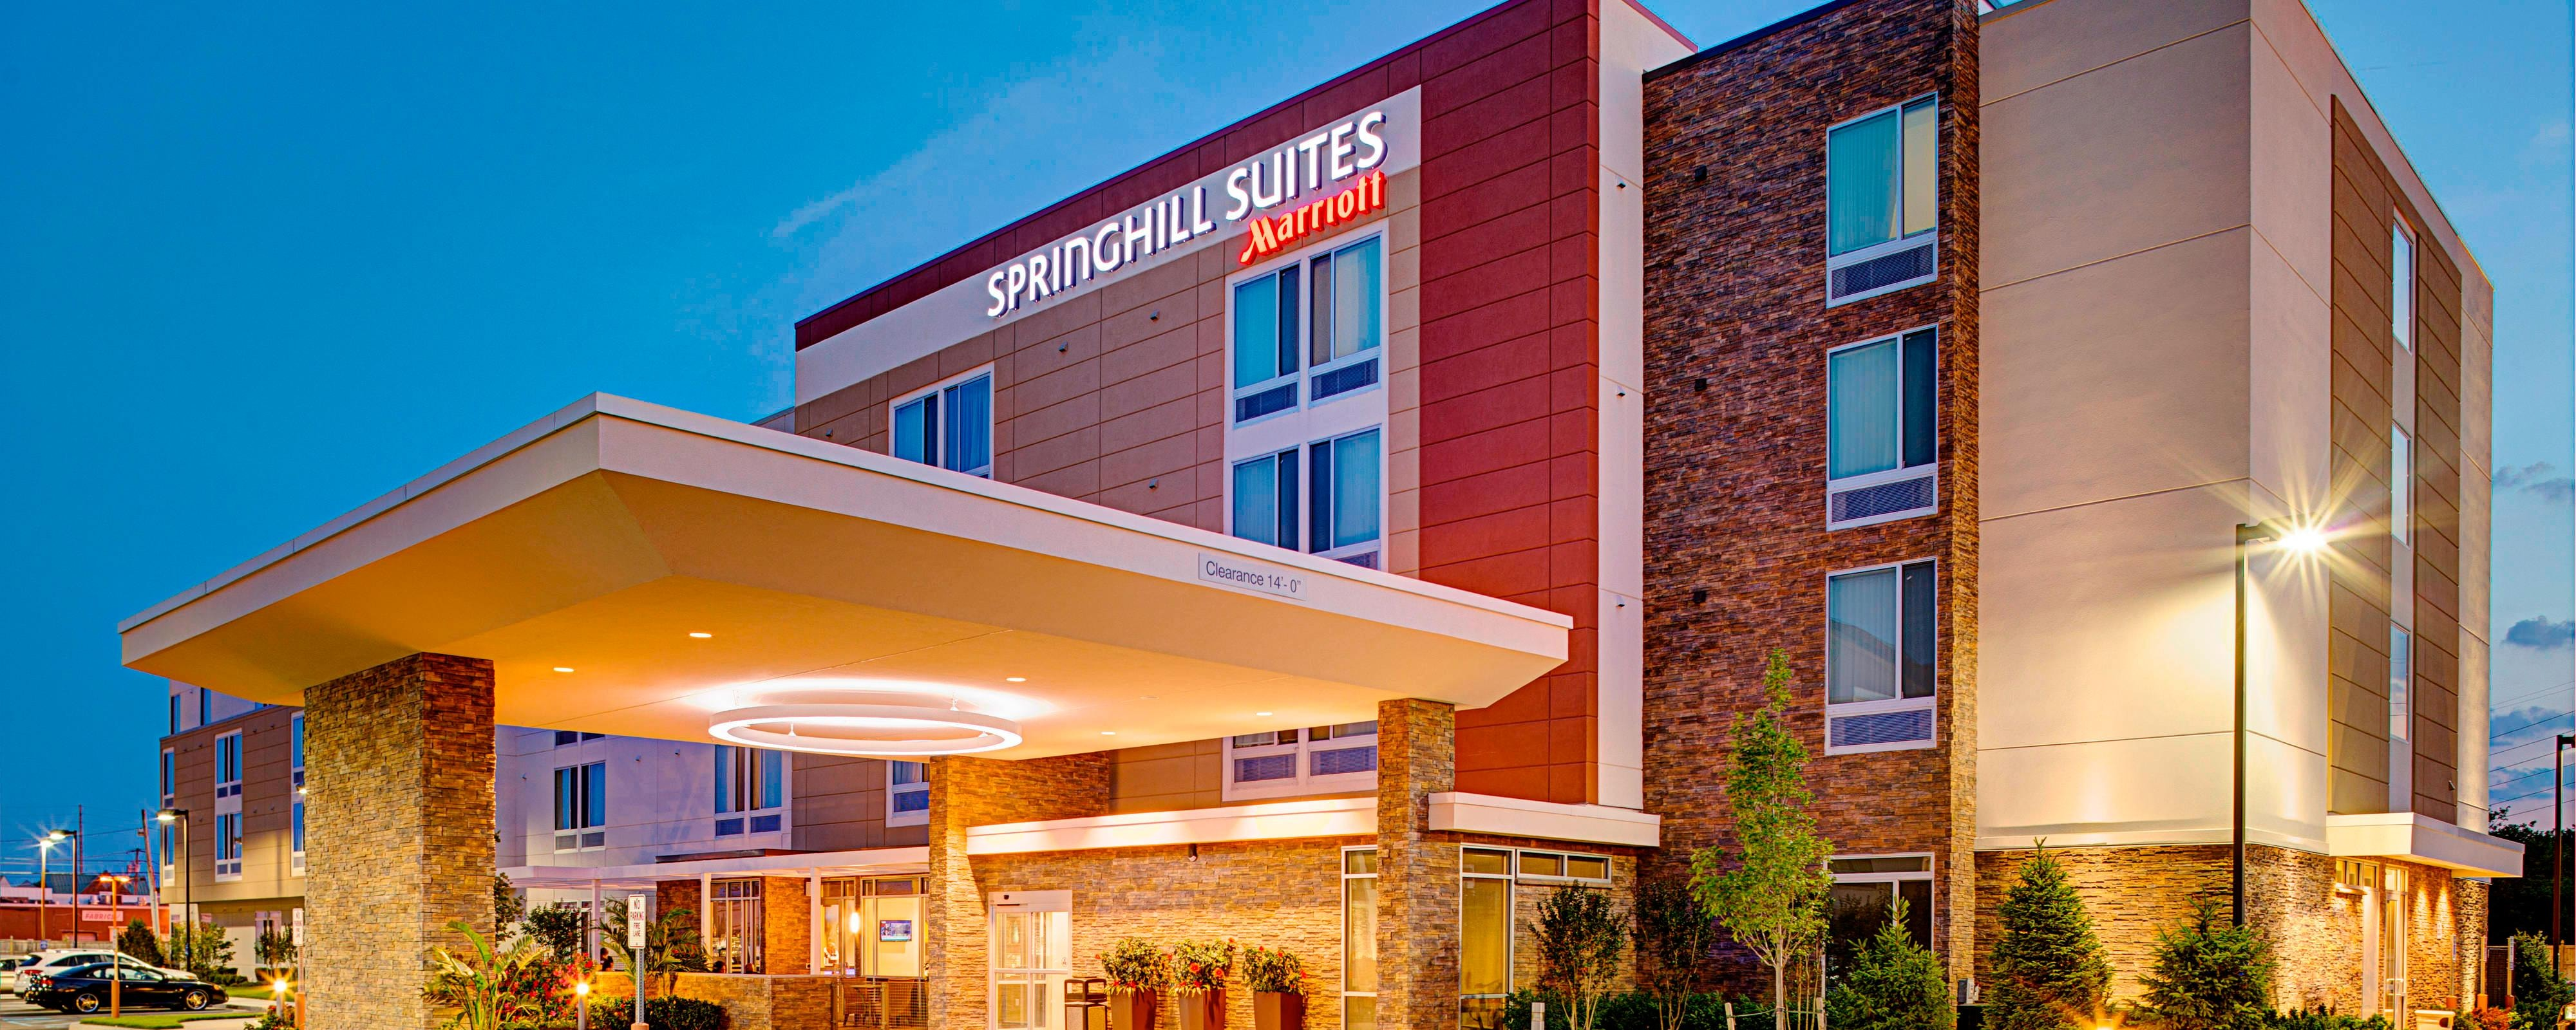 Garden City Ny Hotels Springhill Suites Carle Place